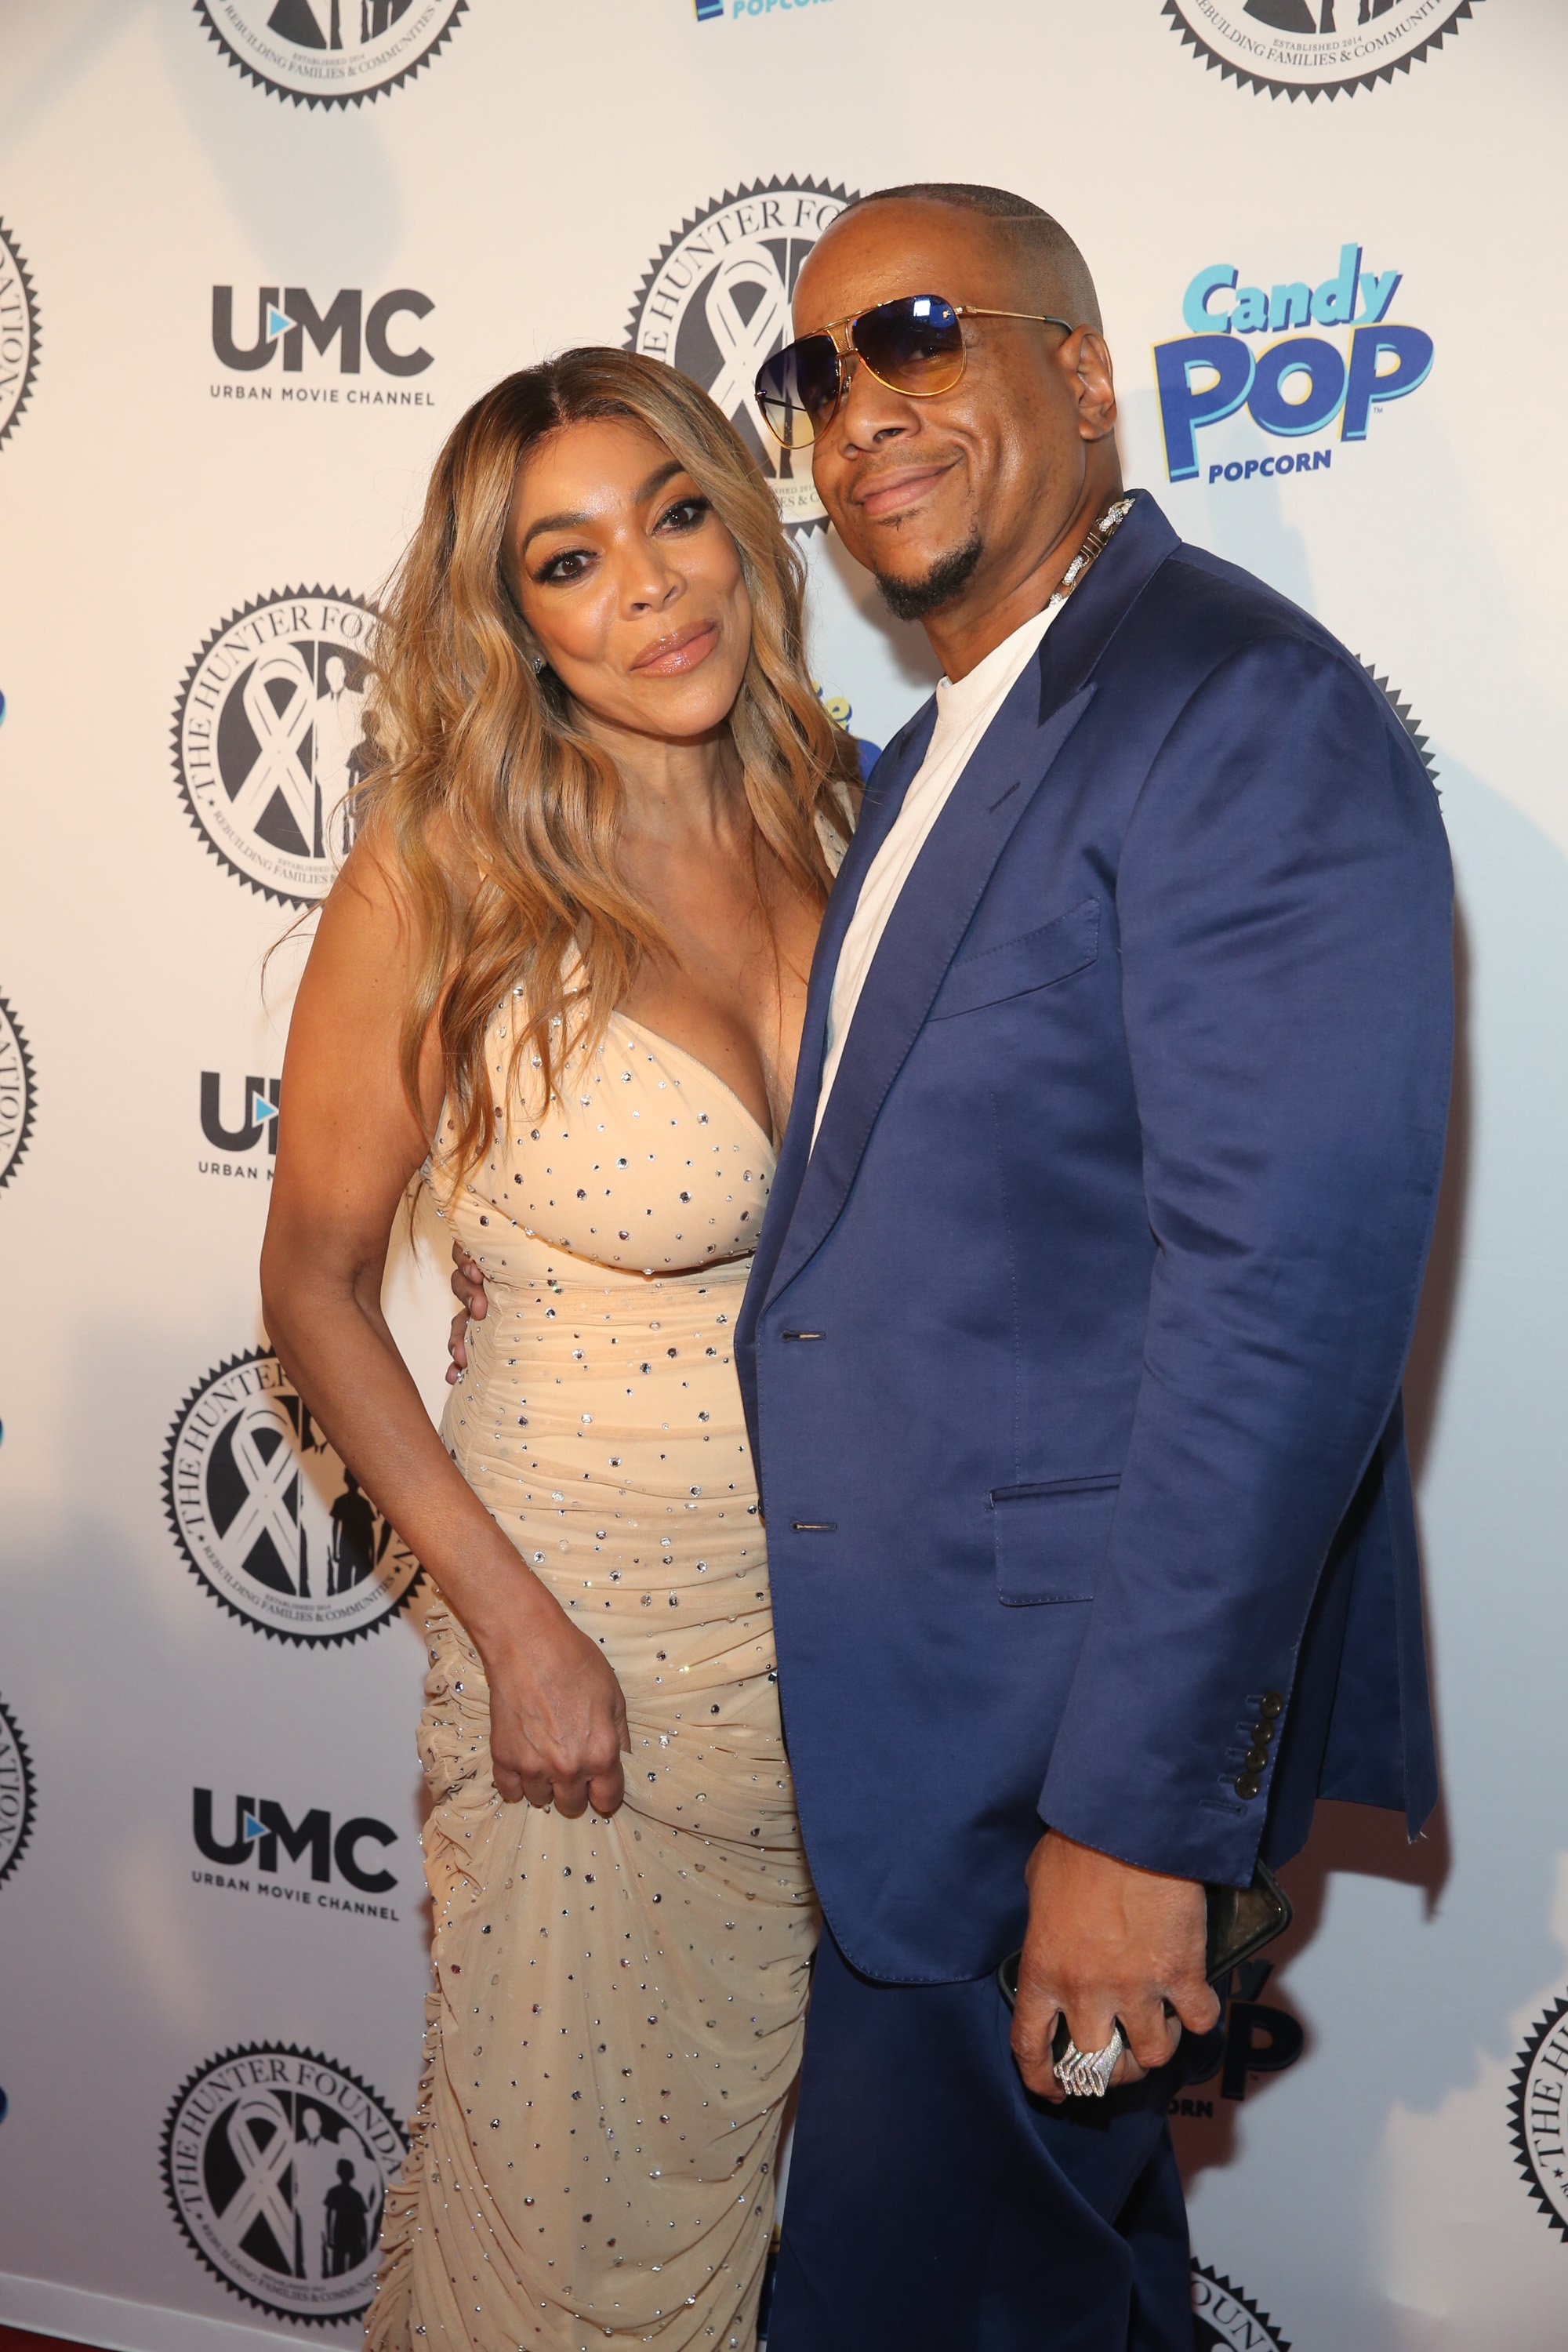 Wendy Williams and Kevin Hunter attend The Hunter Foundation gala at Hammerstein Ballroom. | Source: GettyImages